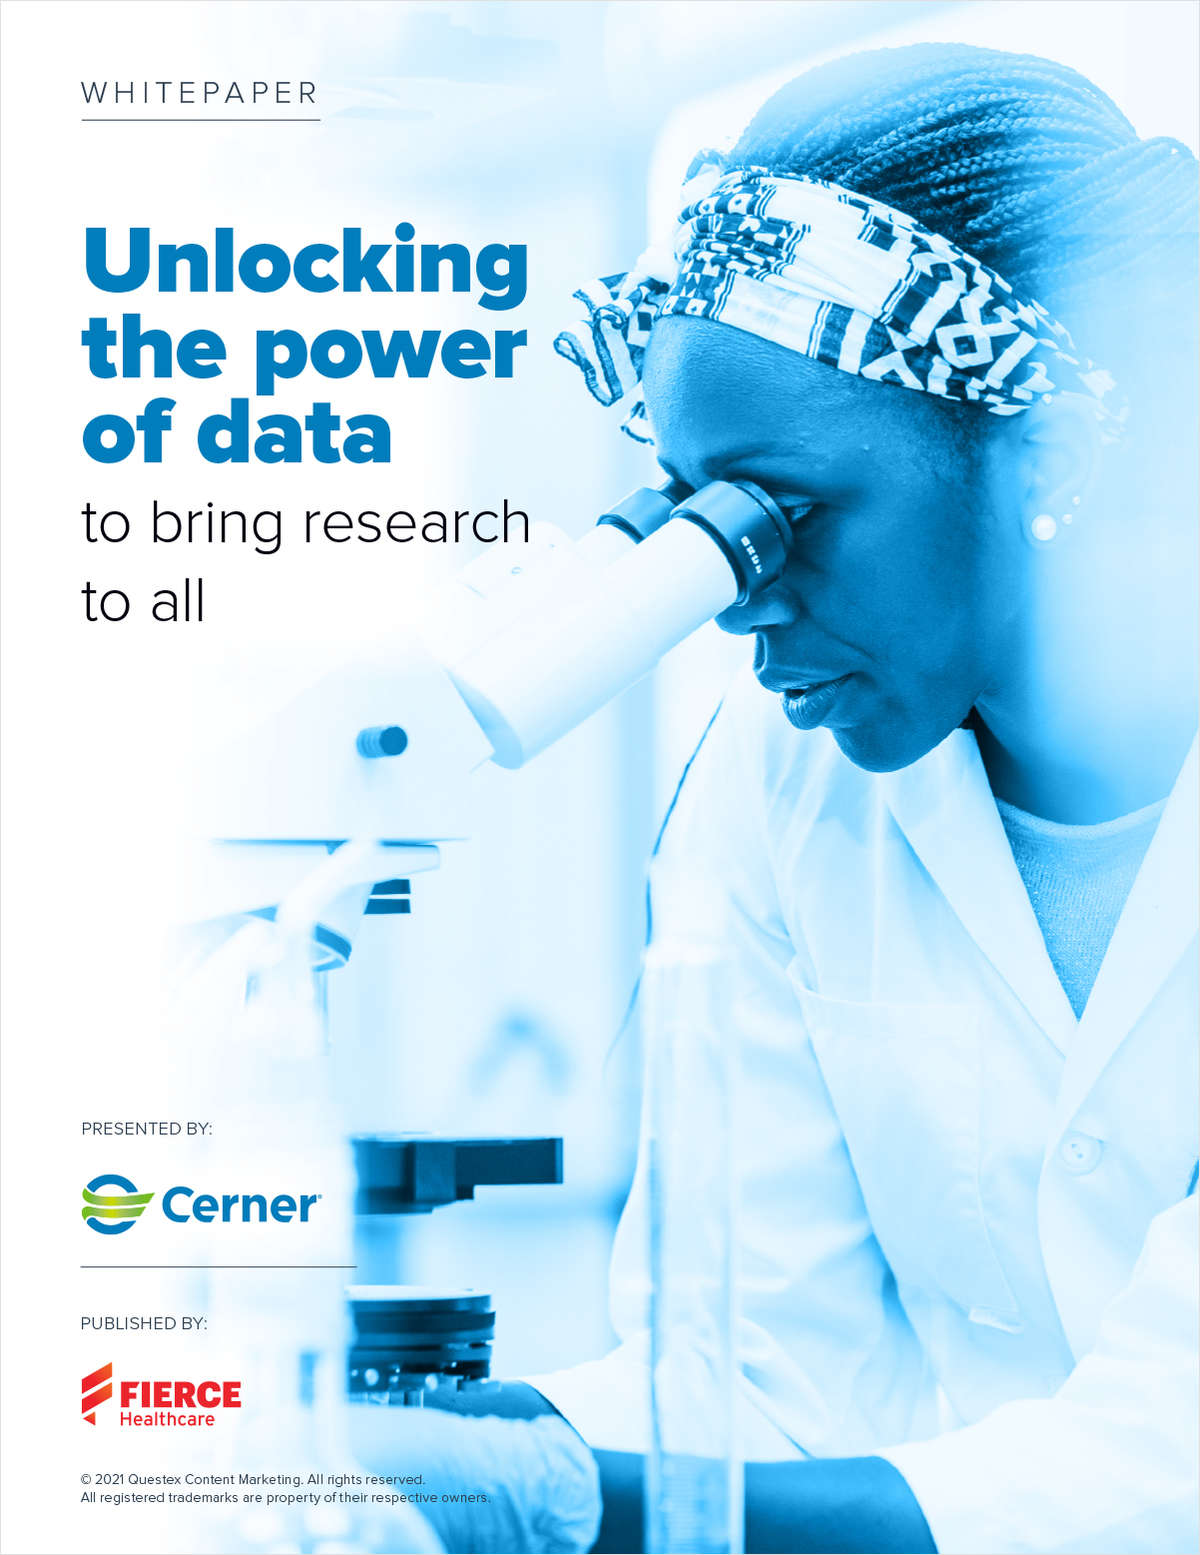 Unlocking the power of data to bring research to all